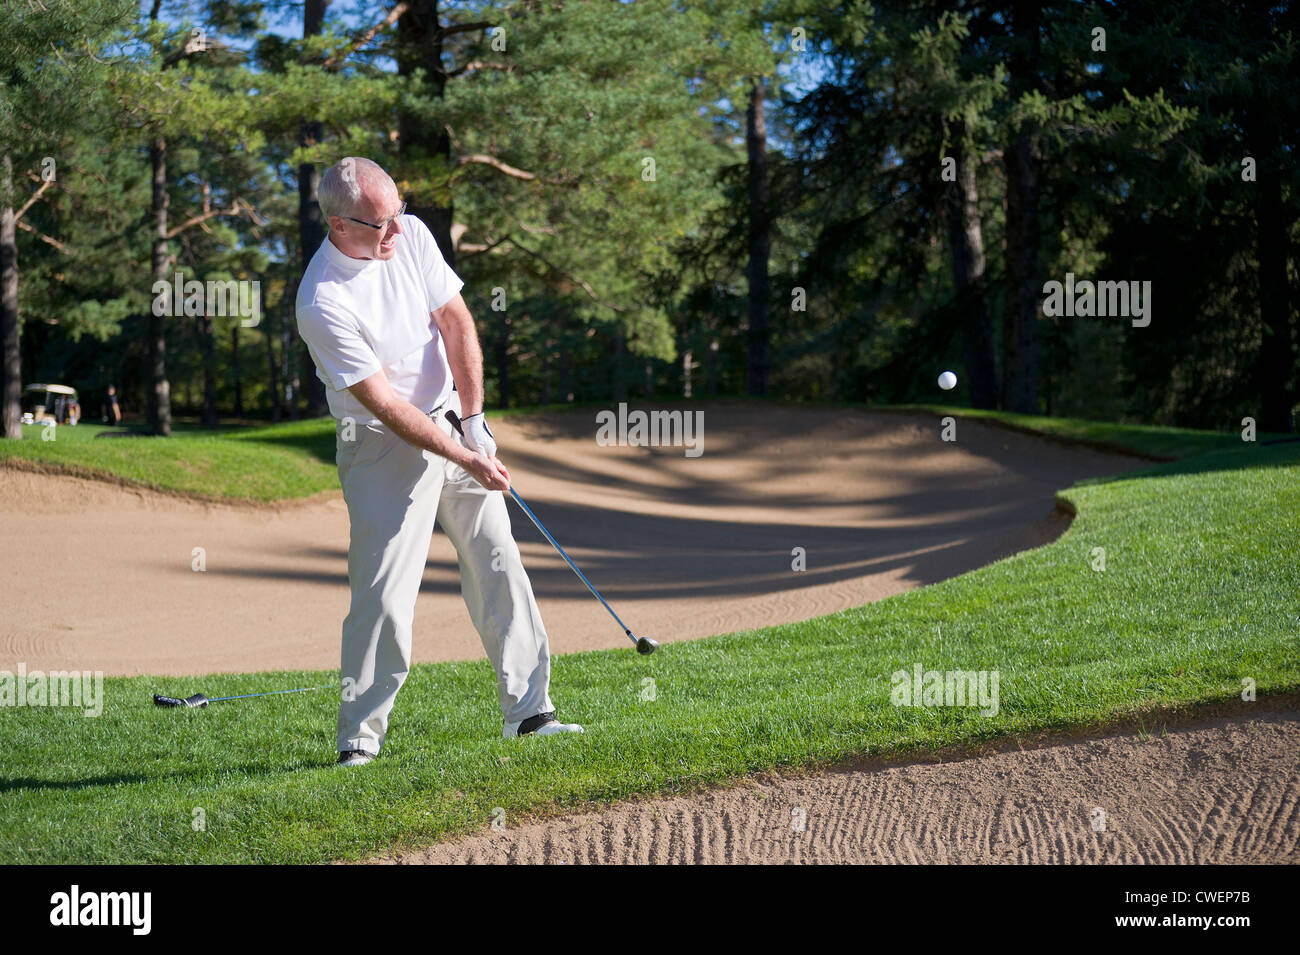 Golfer chipping his ball onto the green. - Stock Image